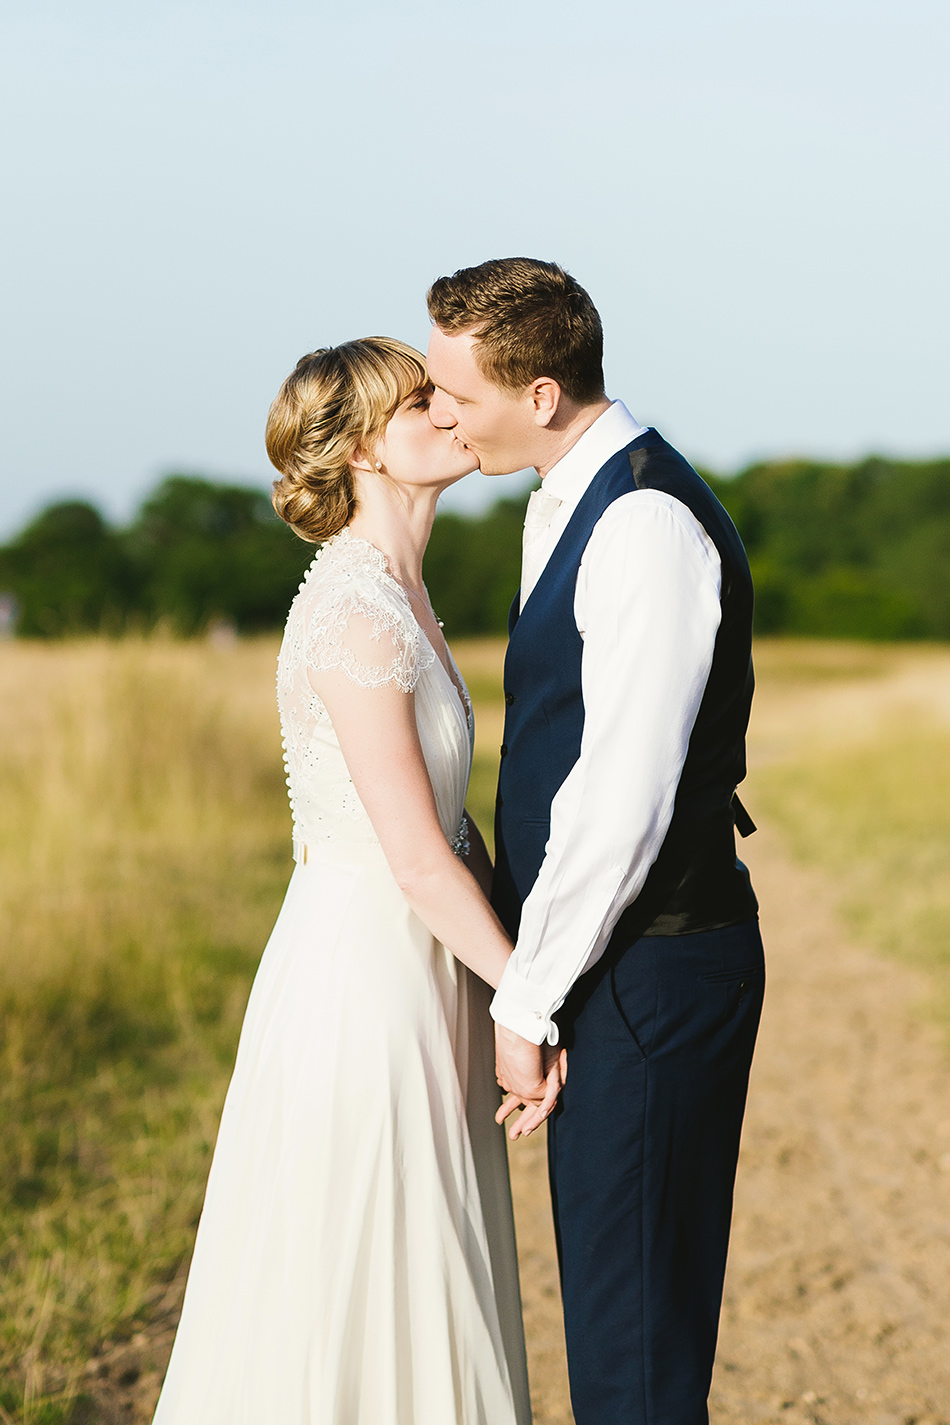 bride and groom wedding photographer portraits at a barn wedding